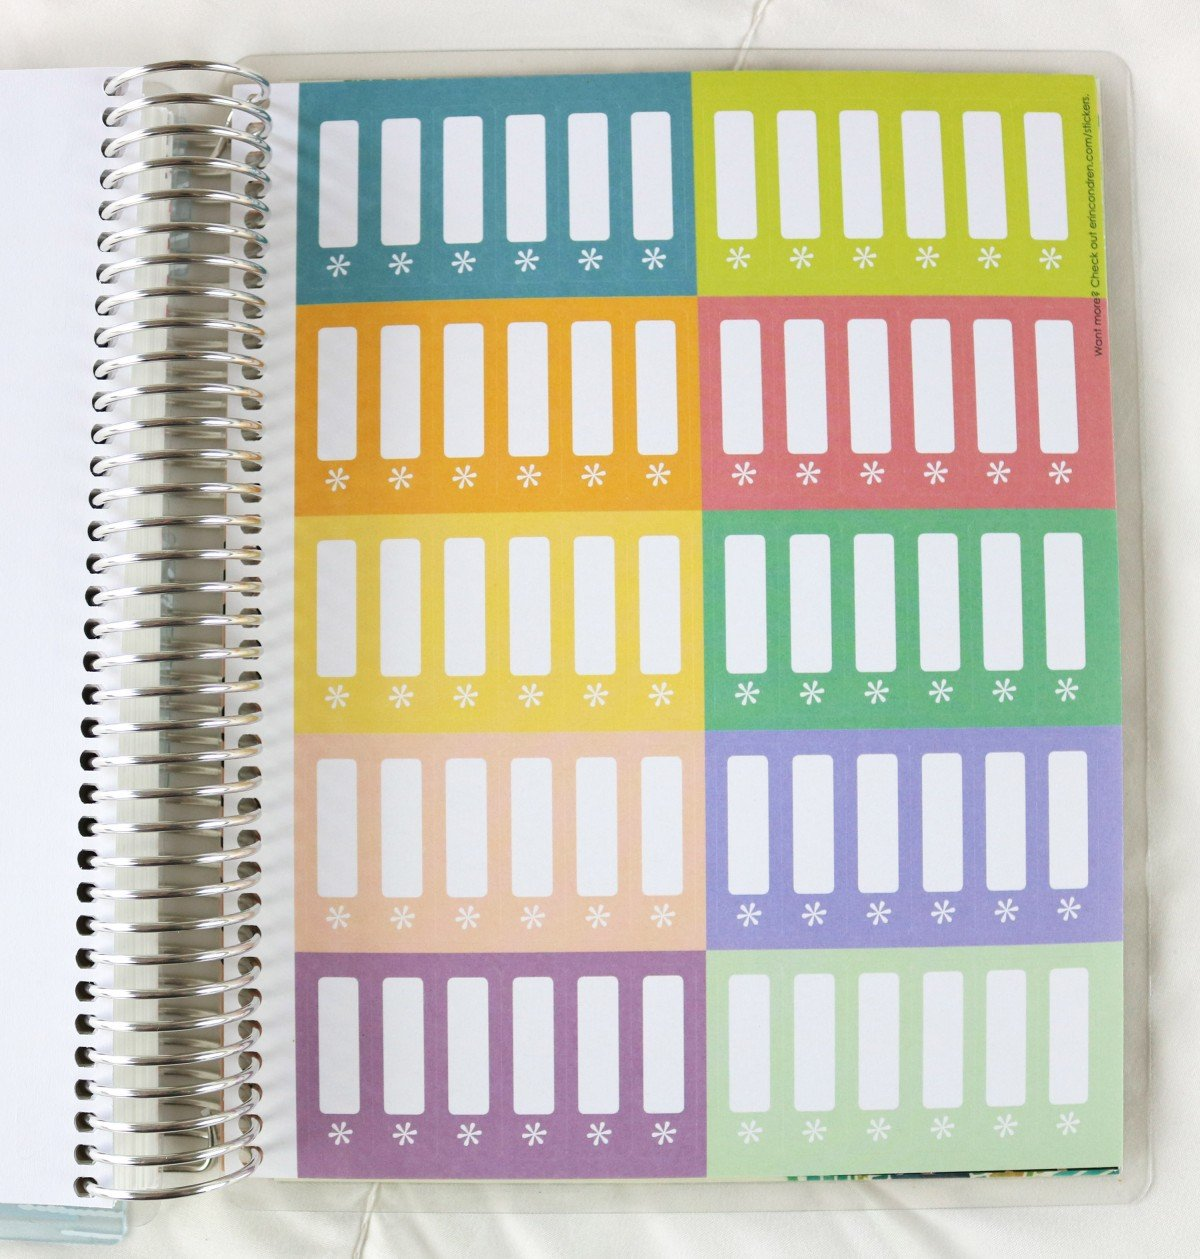 2019 Life Planner Label Stickers